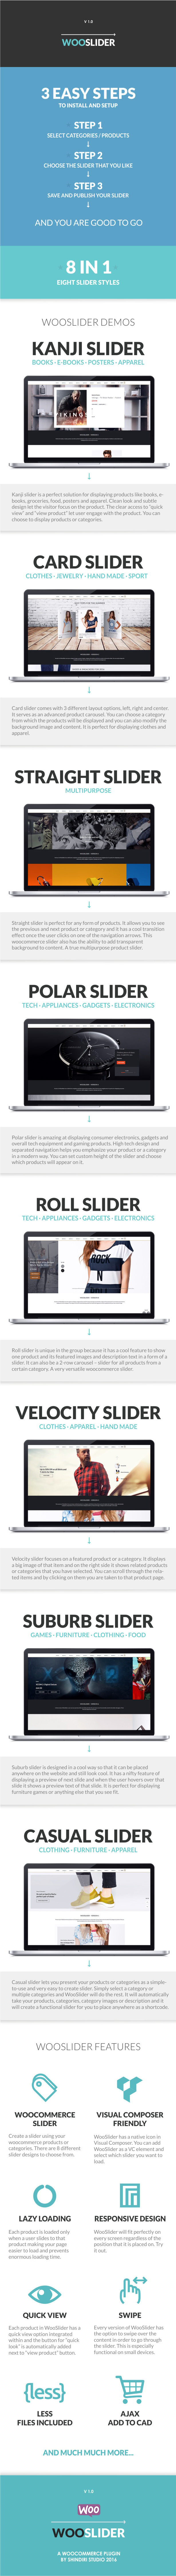 Woo Shop Slider - WooCommerce Slider For Products, Single Product and Categories - 1